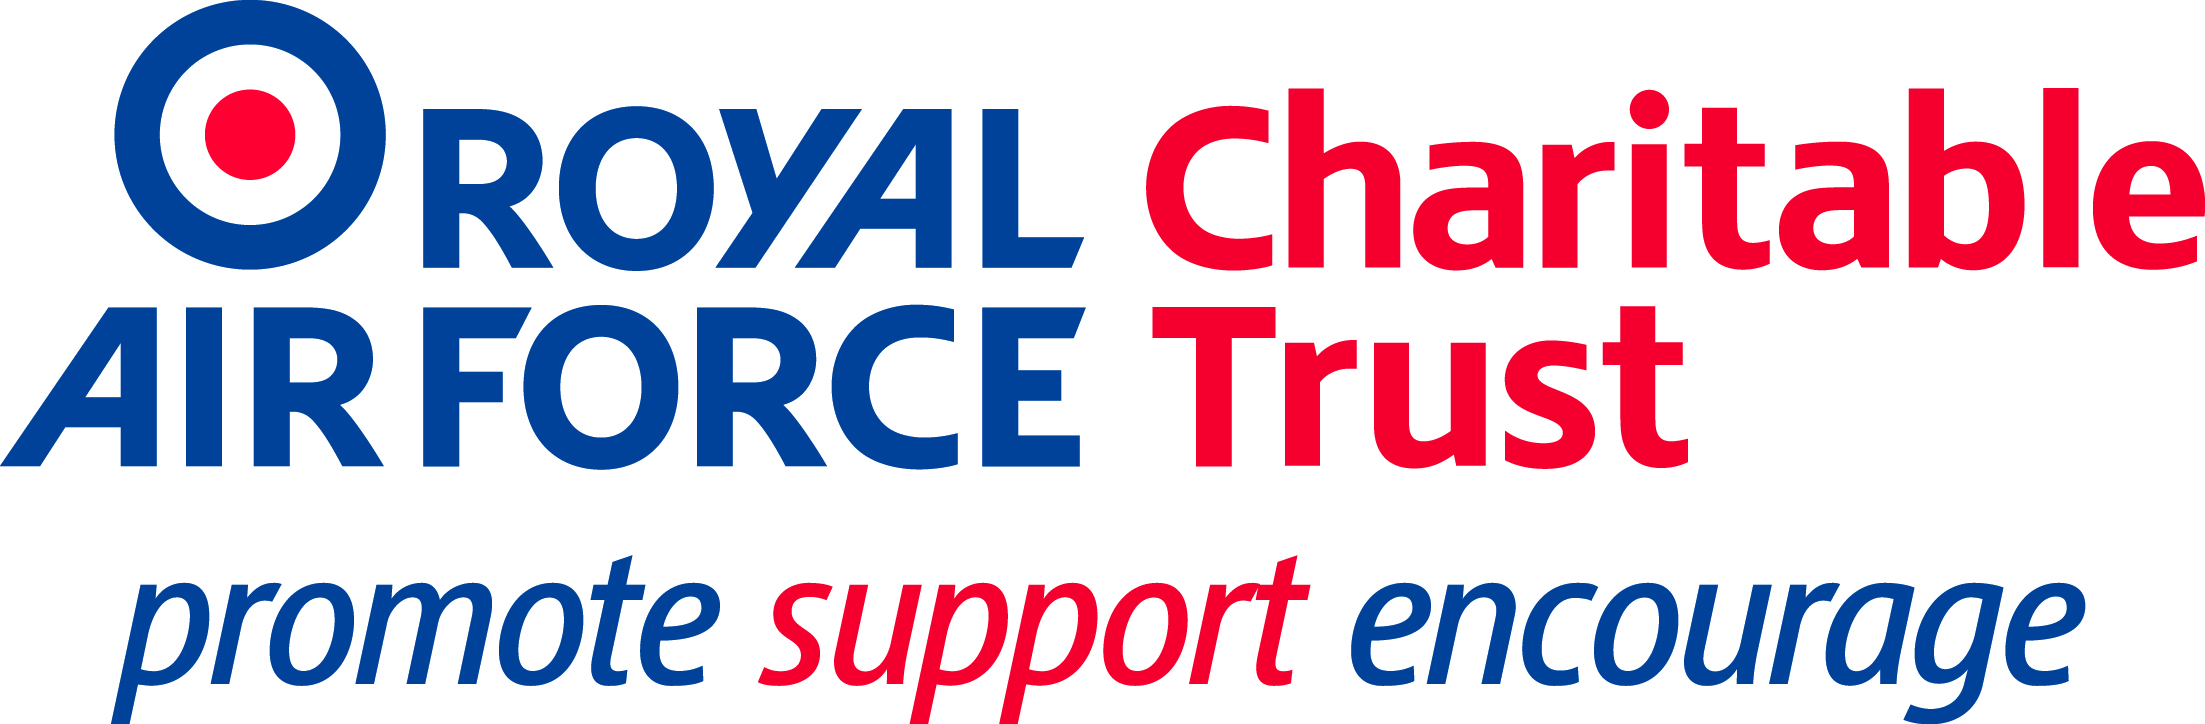 RAF Charitable Trust Enterprise image